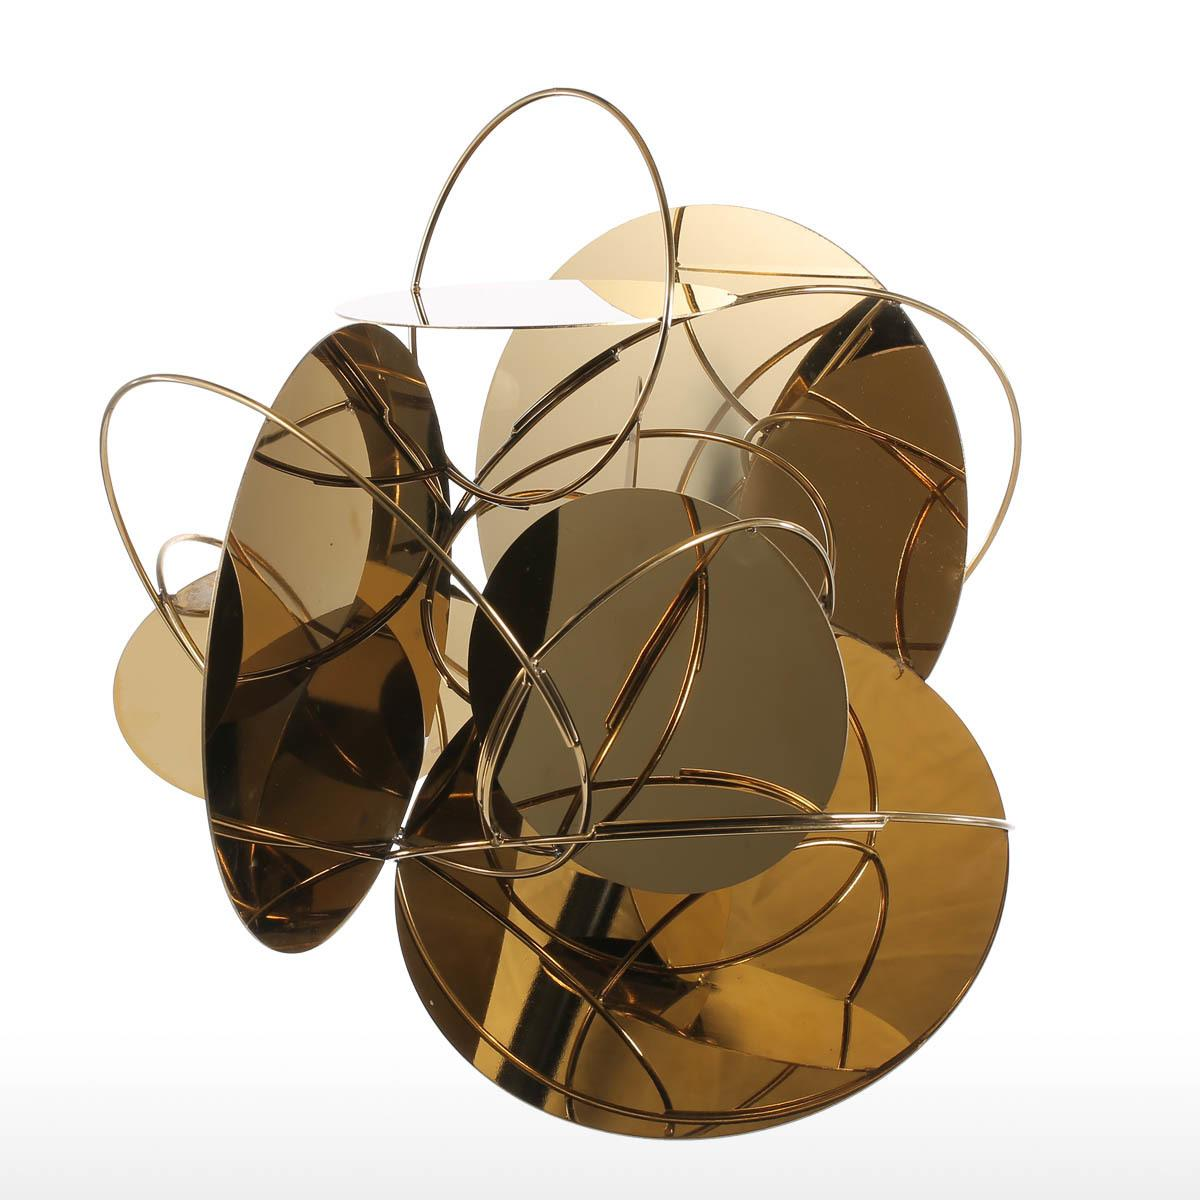 Tooarts Golden Mirror Modern Figurines Home Decor Abstract Crafts Ornament  Metal Sculpture Interior Home Decoration Accessories UK 2019 From  Hero_zhangpeng, ...